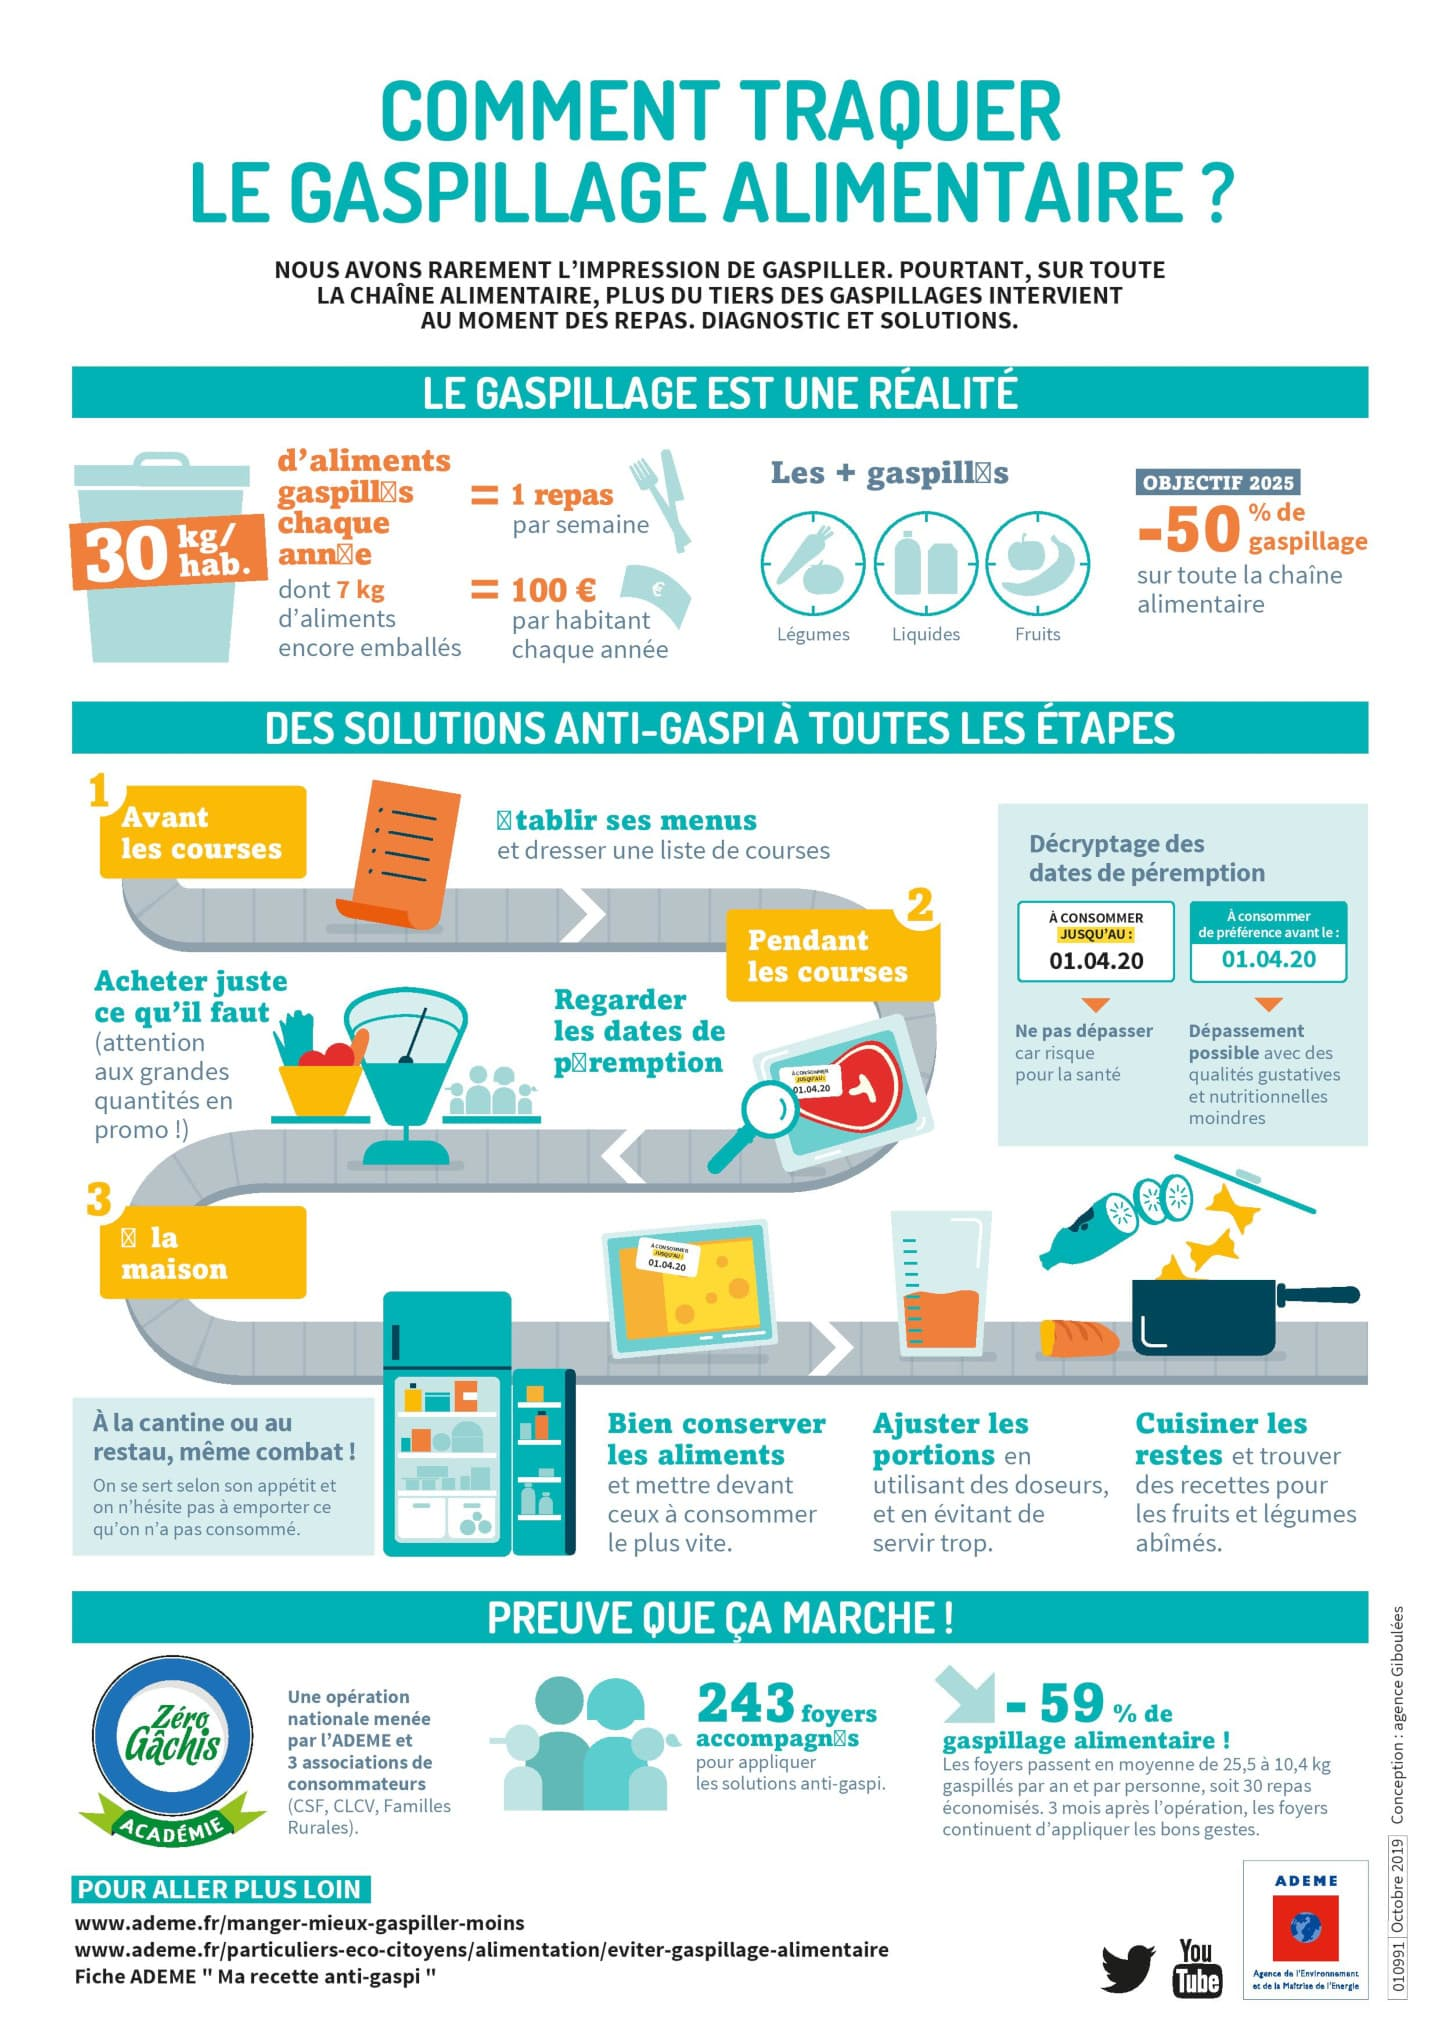 Comment traquer le gaspillage alimentaire